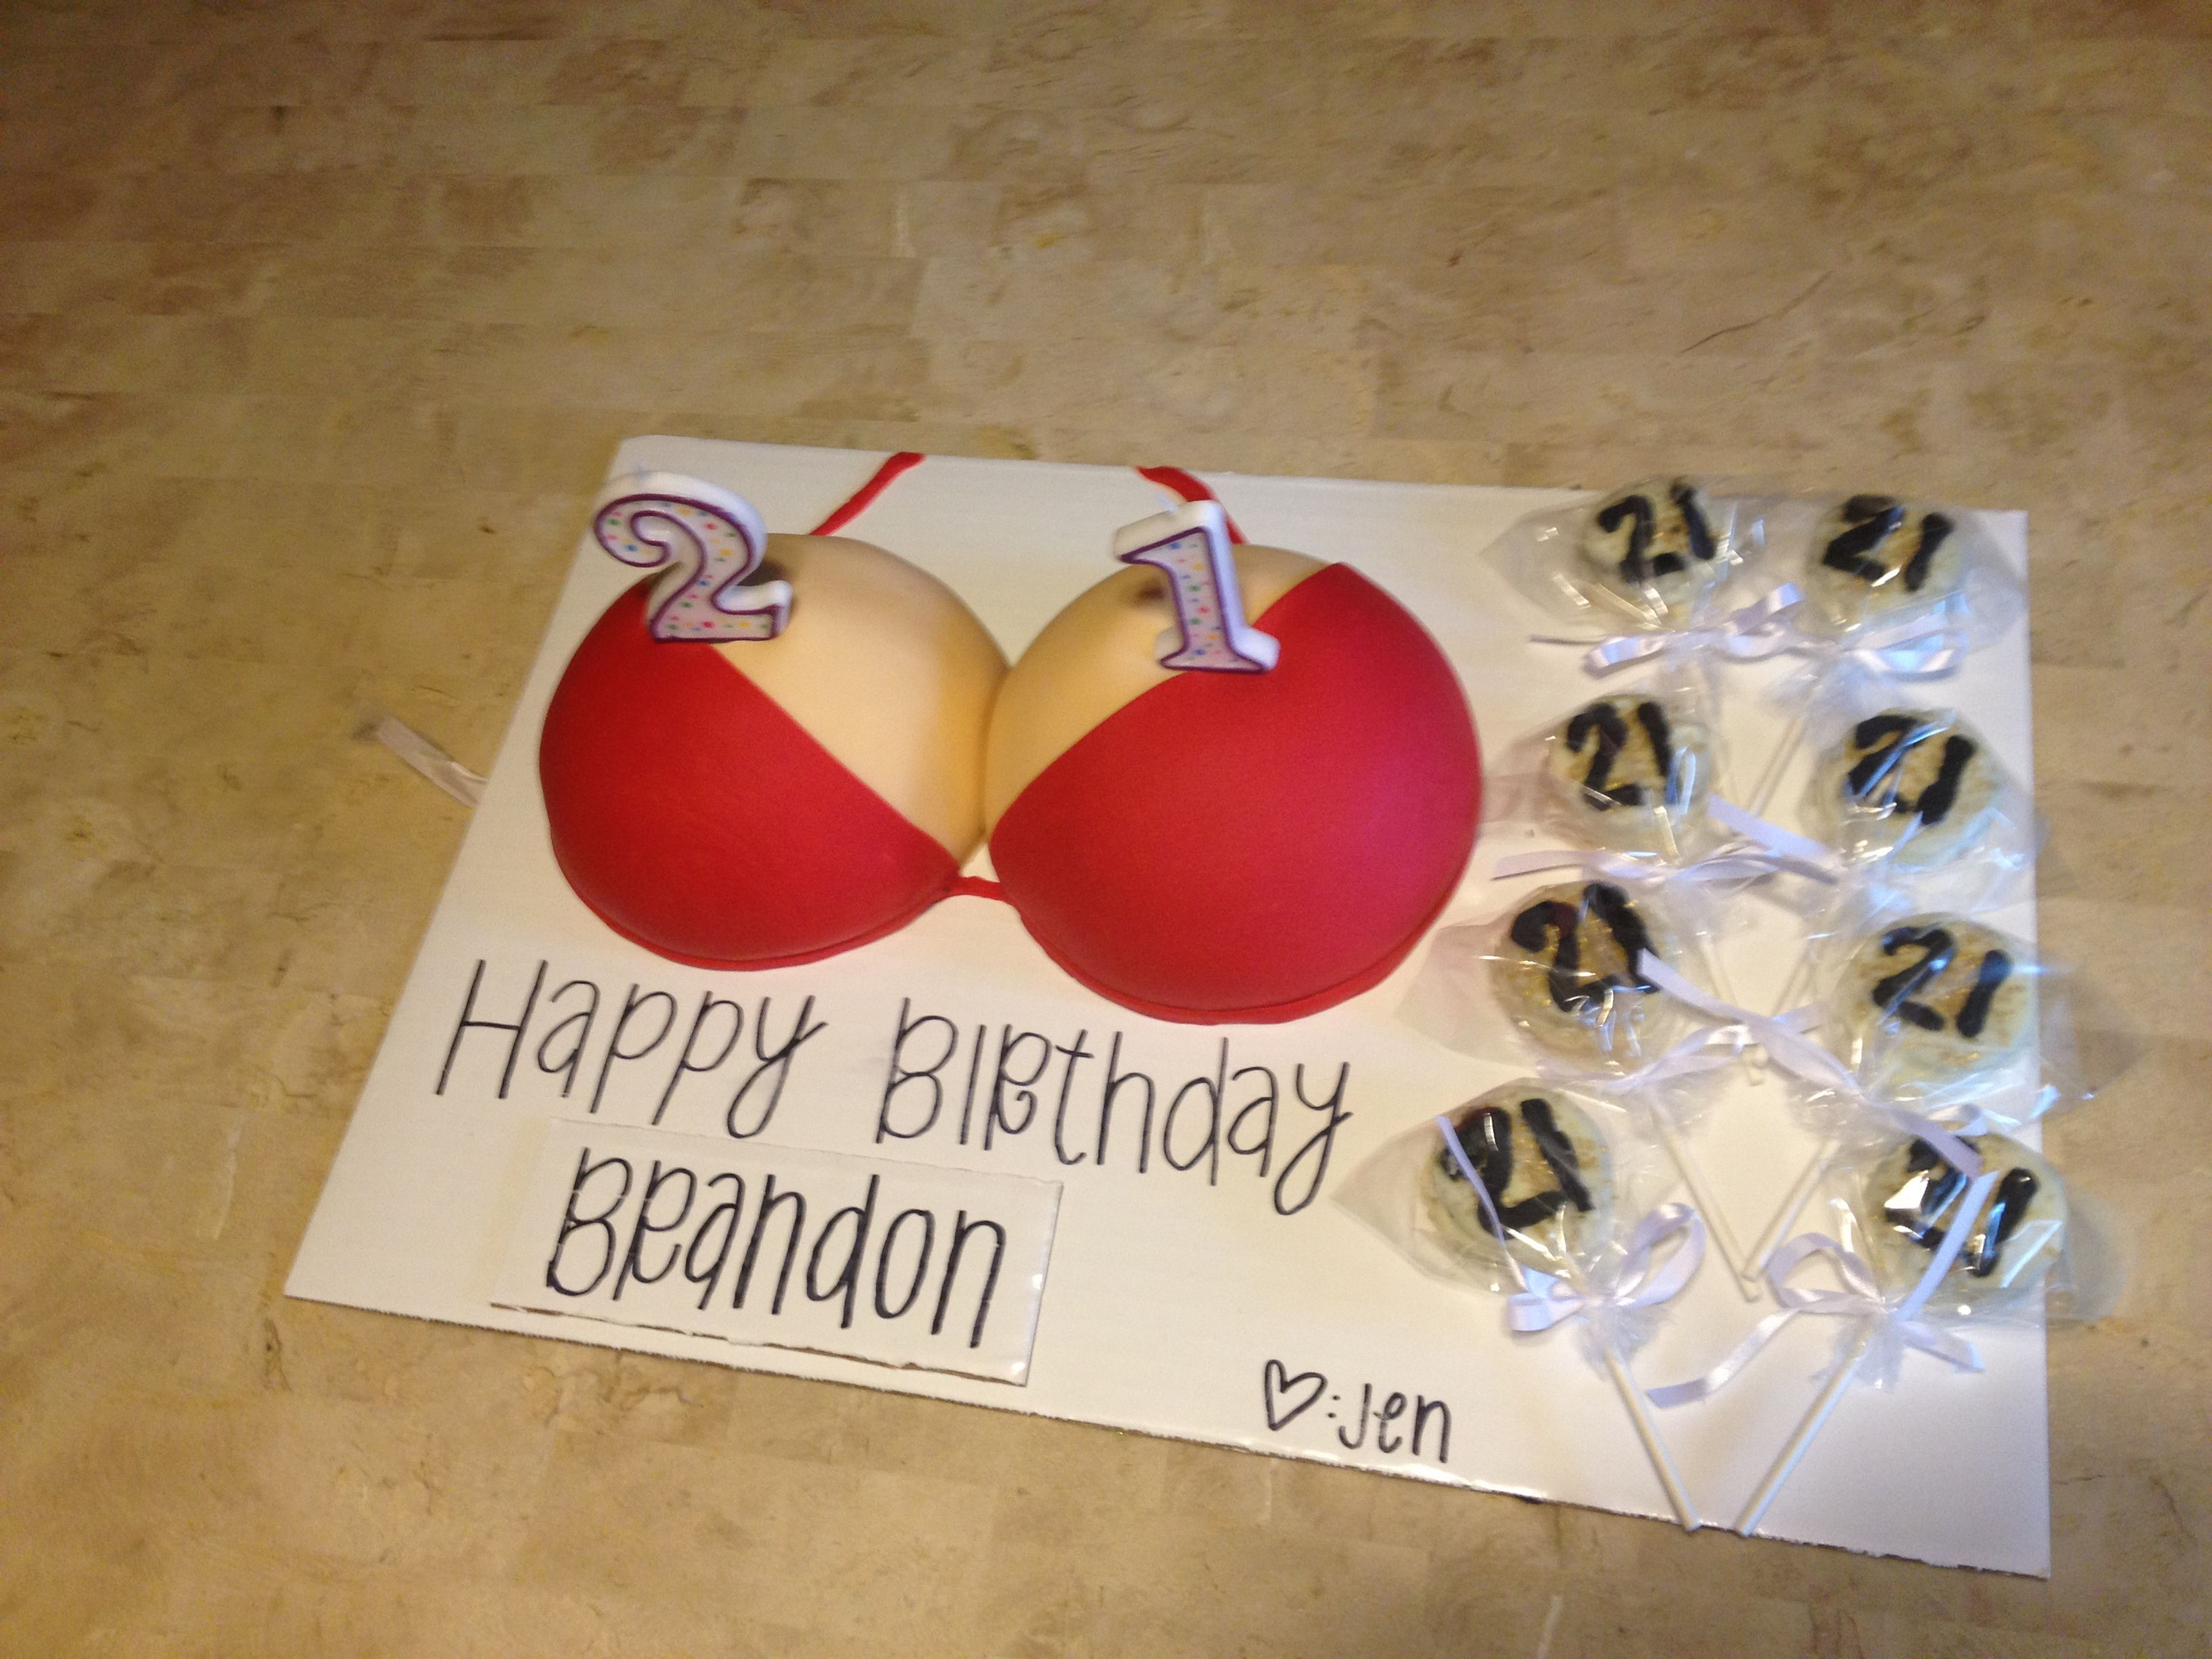 Birthday Cakes Gifts Images ~ Guys st birthday idea boobie cake and chocolate covered oreos